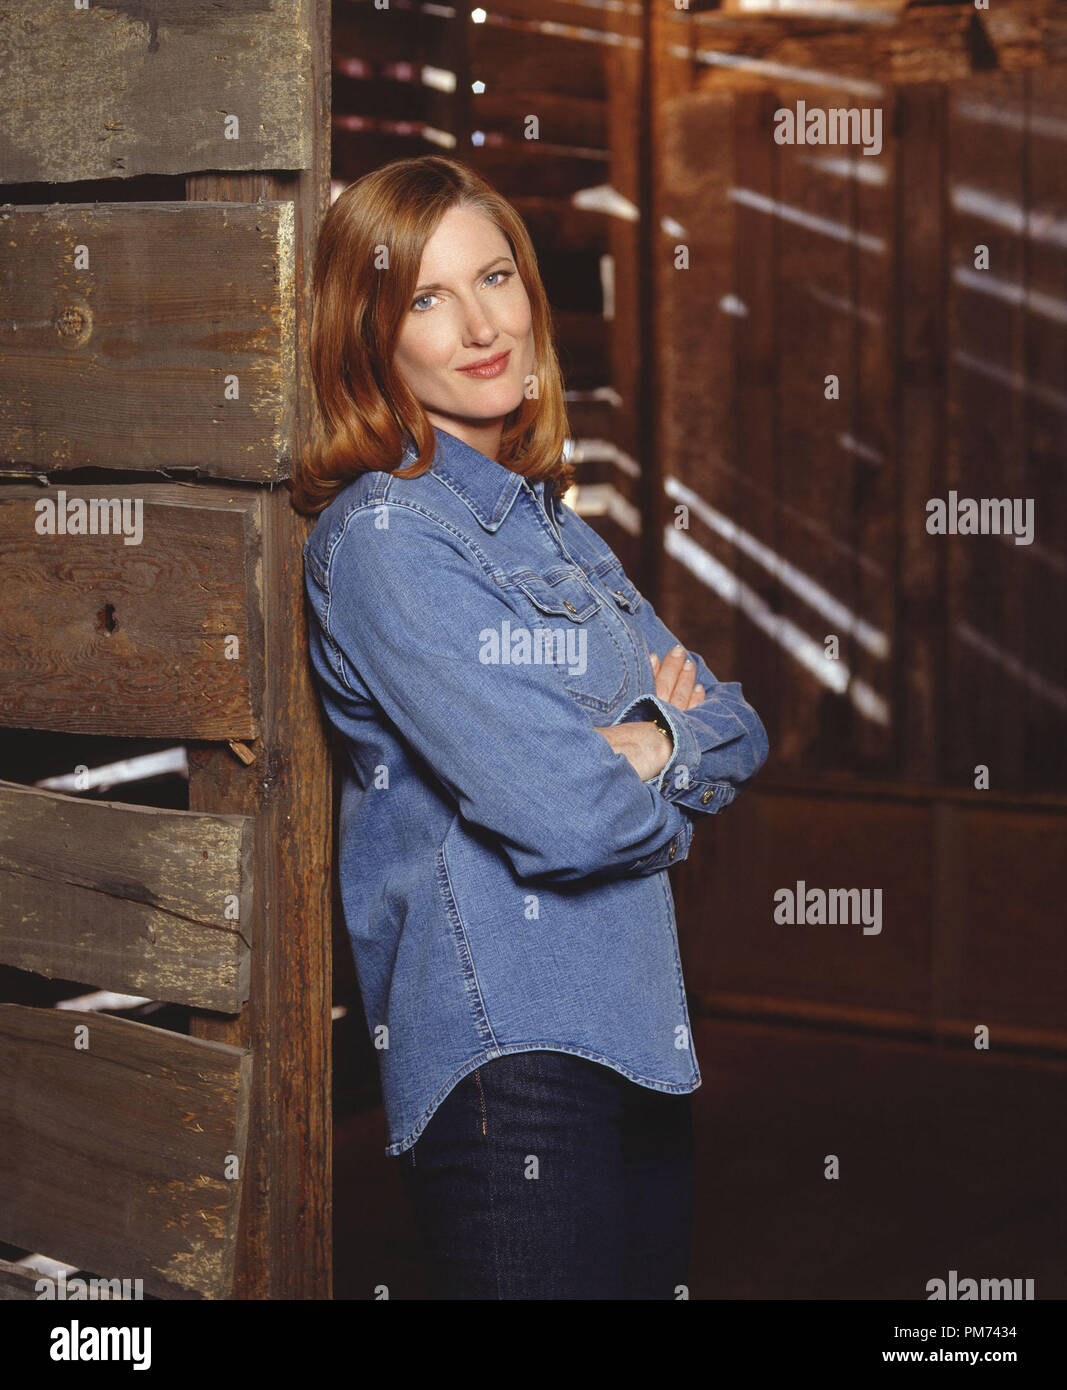 """Film Still / Publicity Still from """"Smallville""""  Annette O'Toole 2001 Photo credit: Kharen Hill    File Reference # 30847362THA  For Editorial Use Only -  All Rights Reserved Stock Photo"""